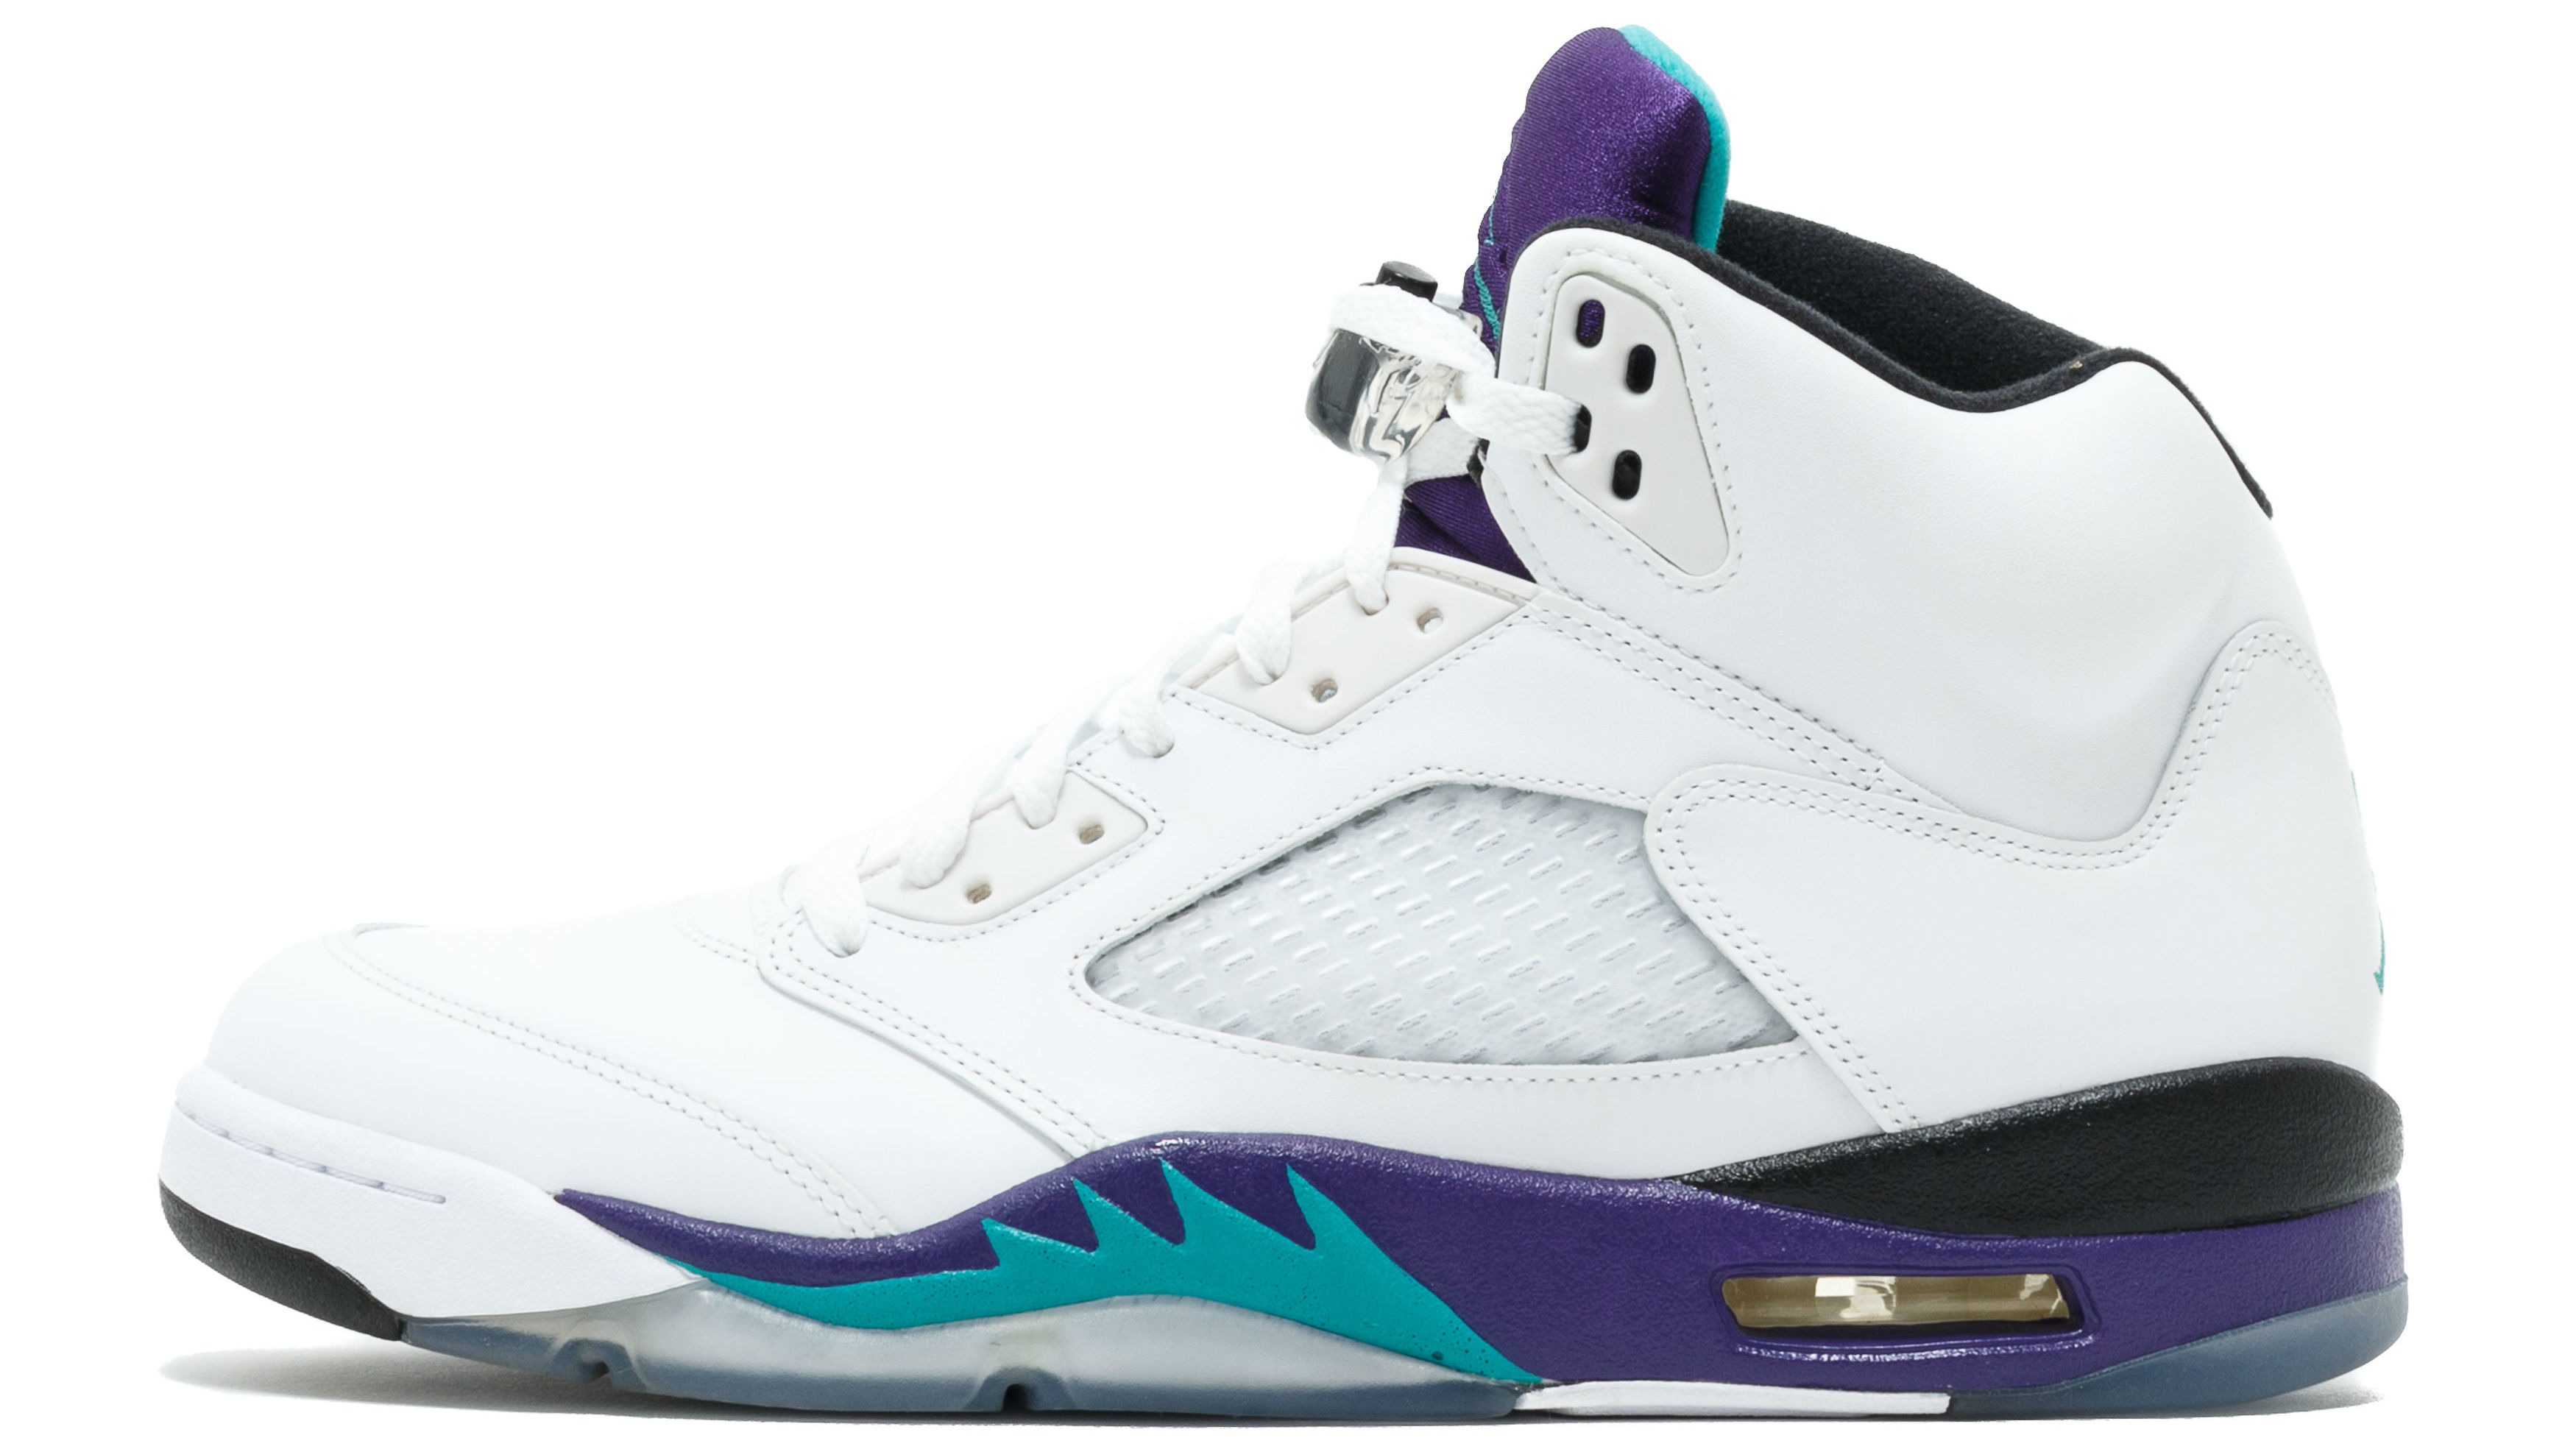 e2802db36386ee The 2018 release date for the Air Jordan V 5 Retro NRG sneakers in   White Grape Ice Black New Emerald. .